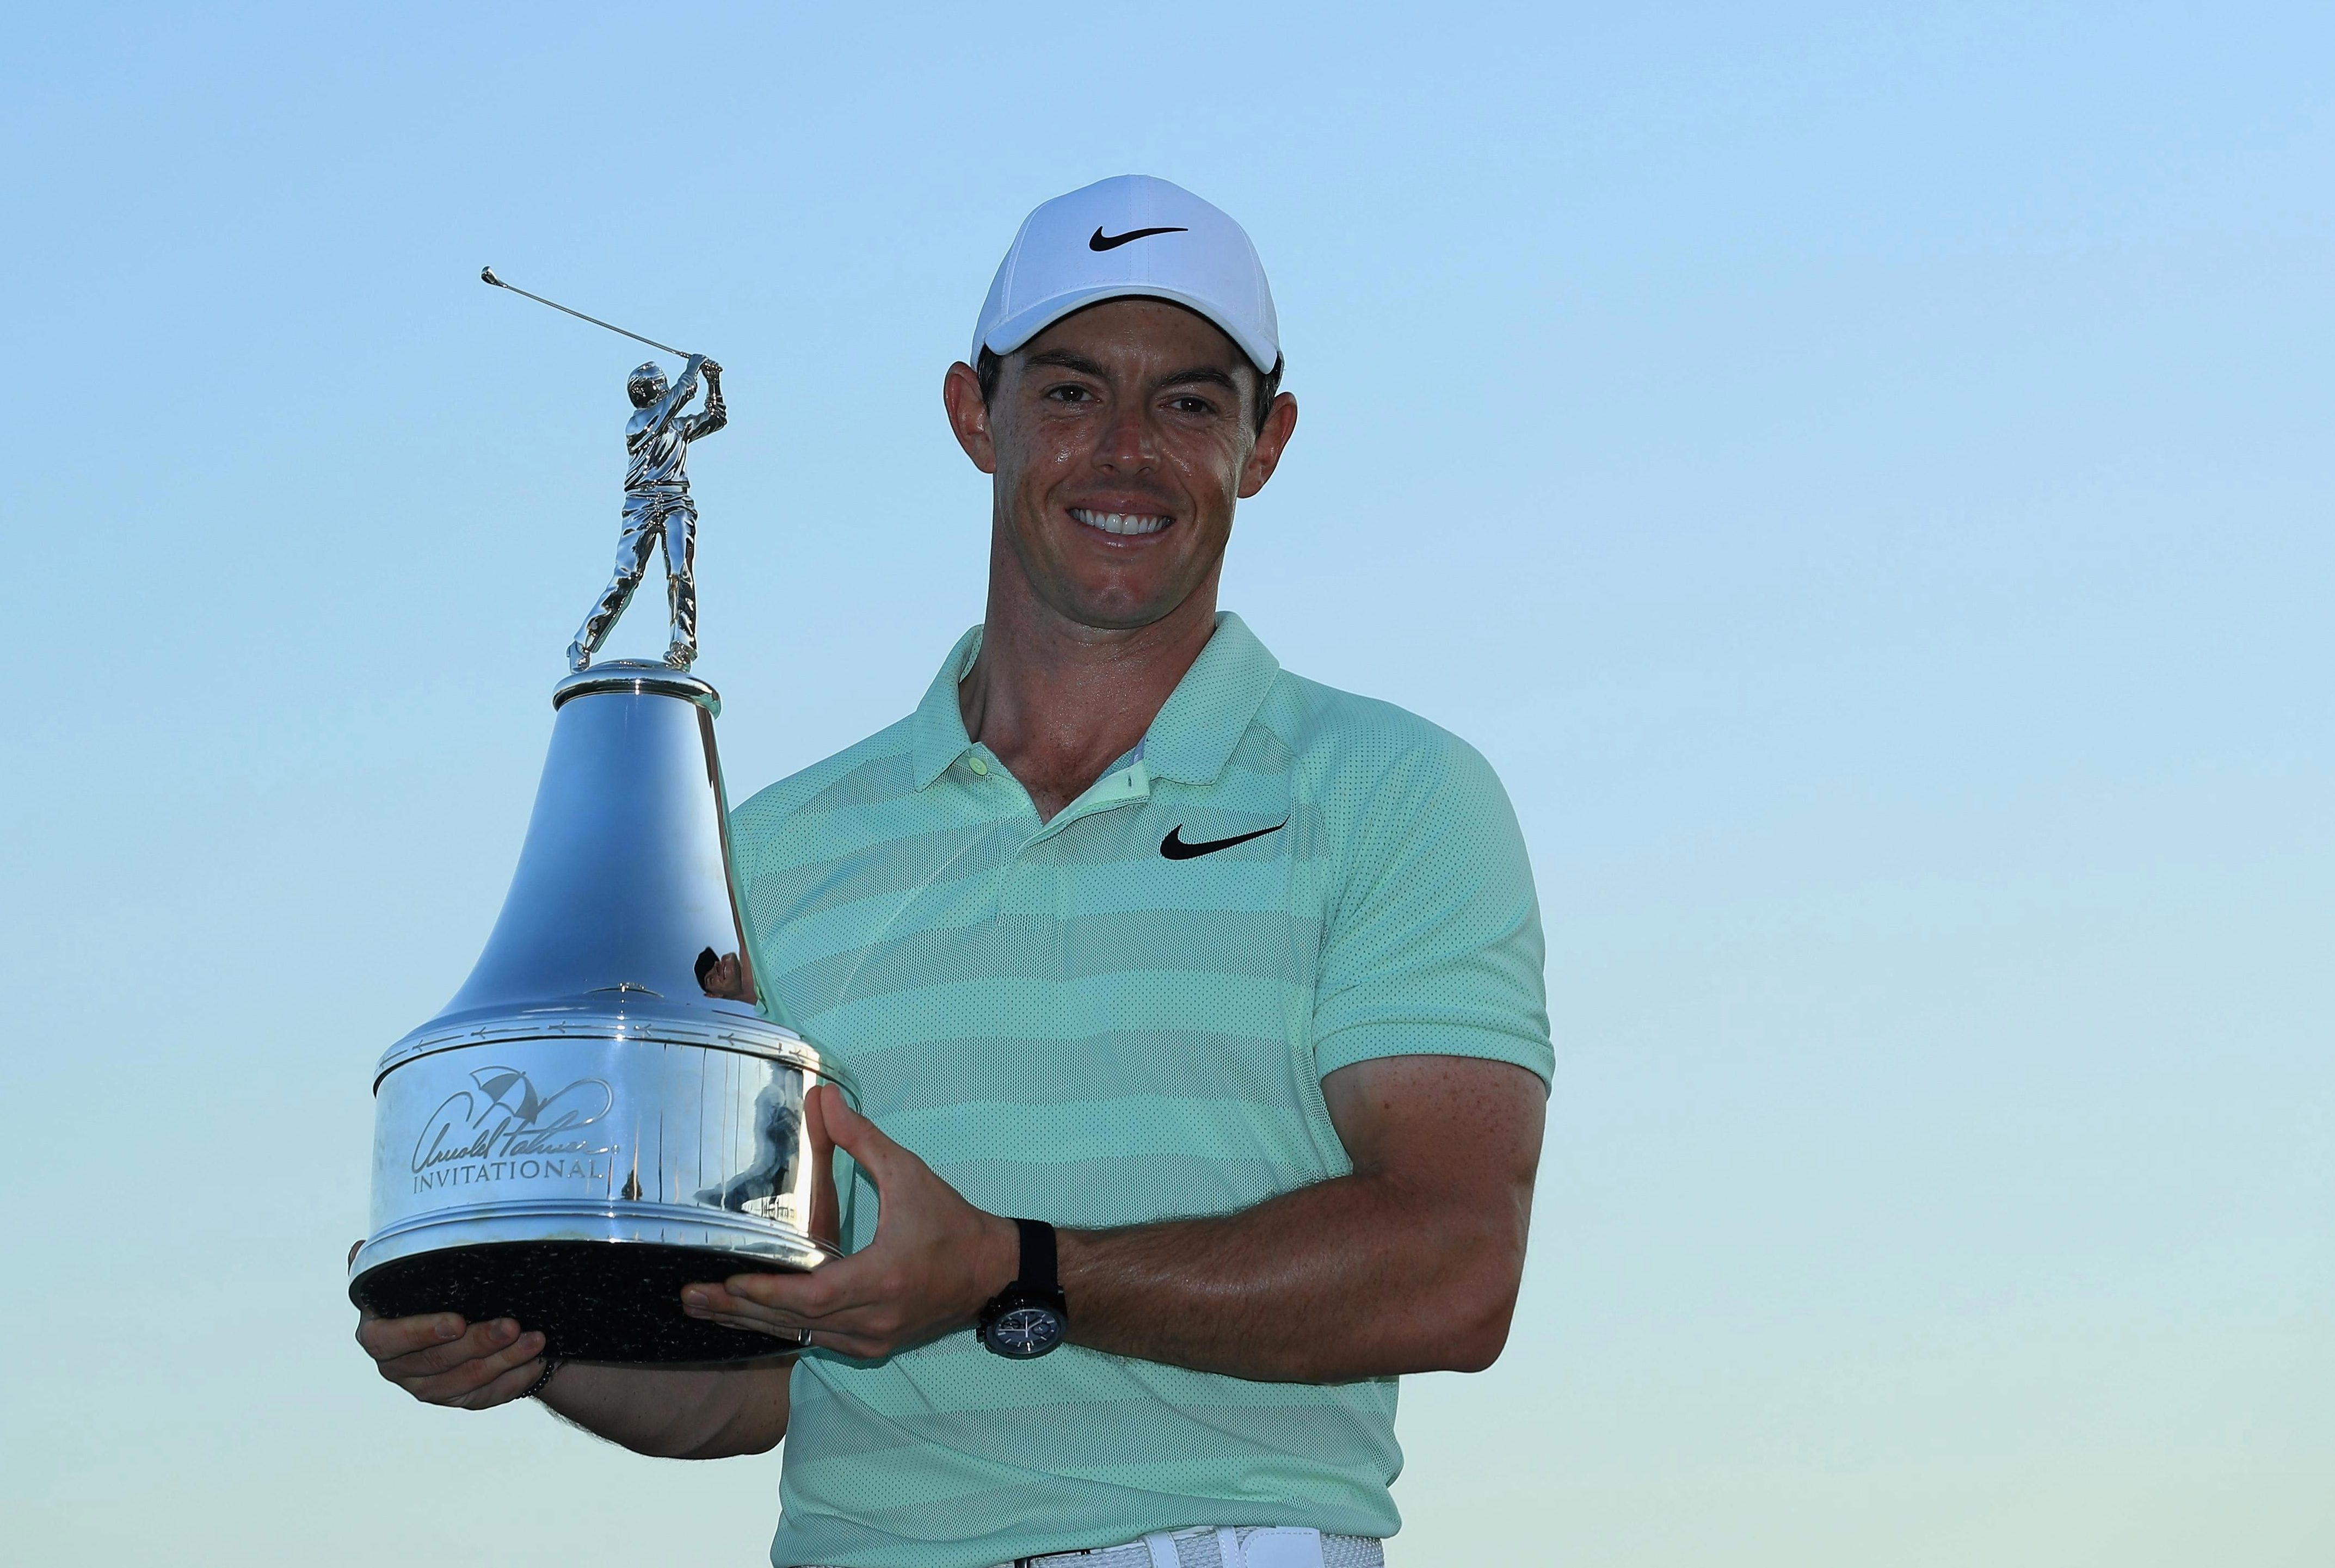 McIlroy putted four birdies in a row from the 13th hole en route to his success